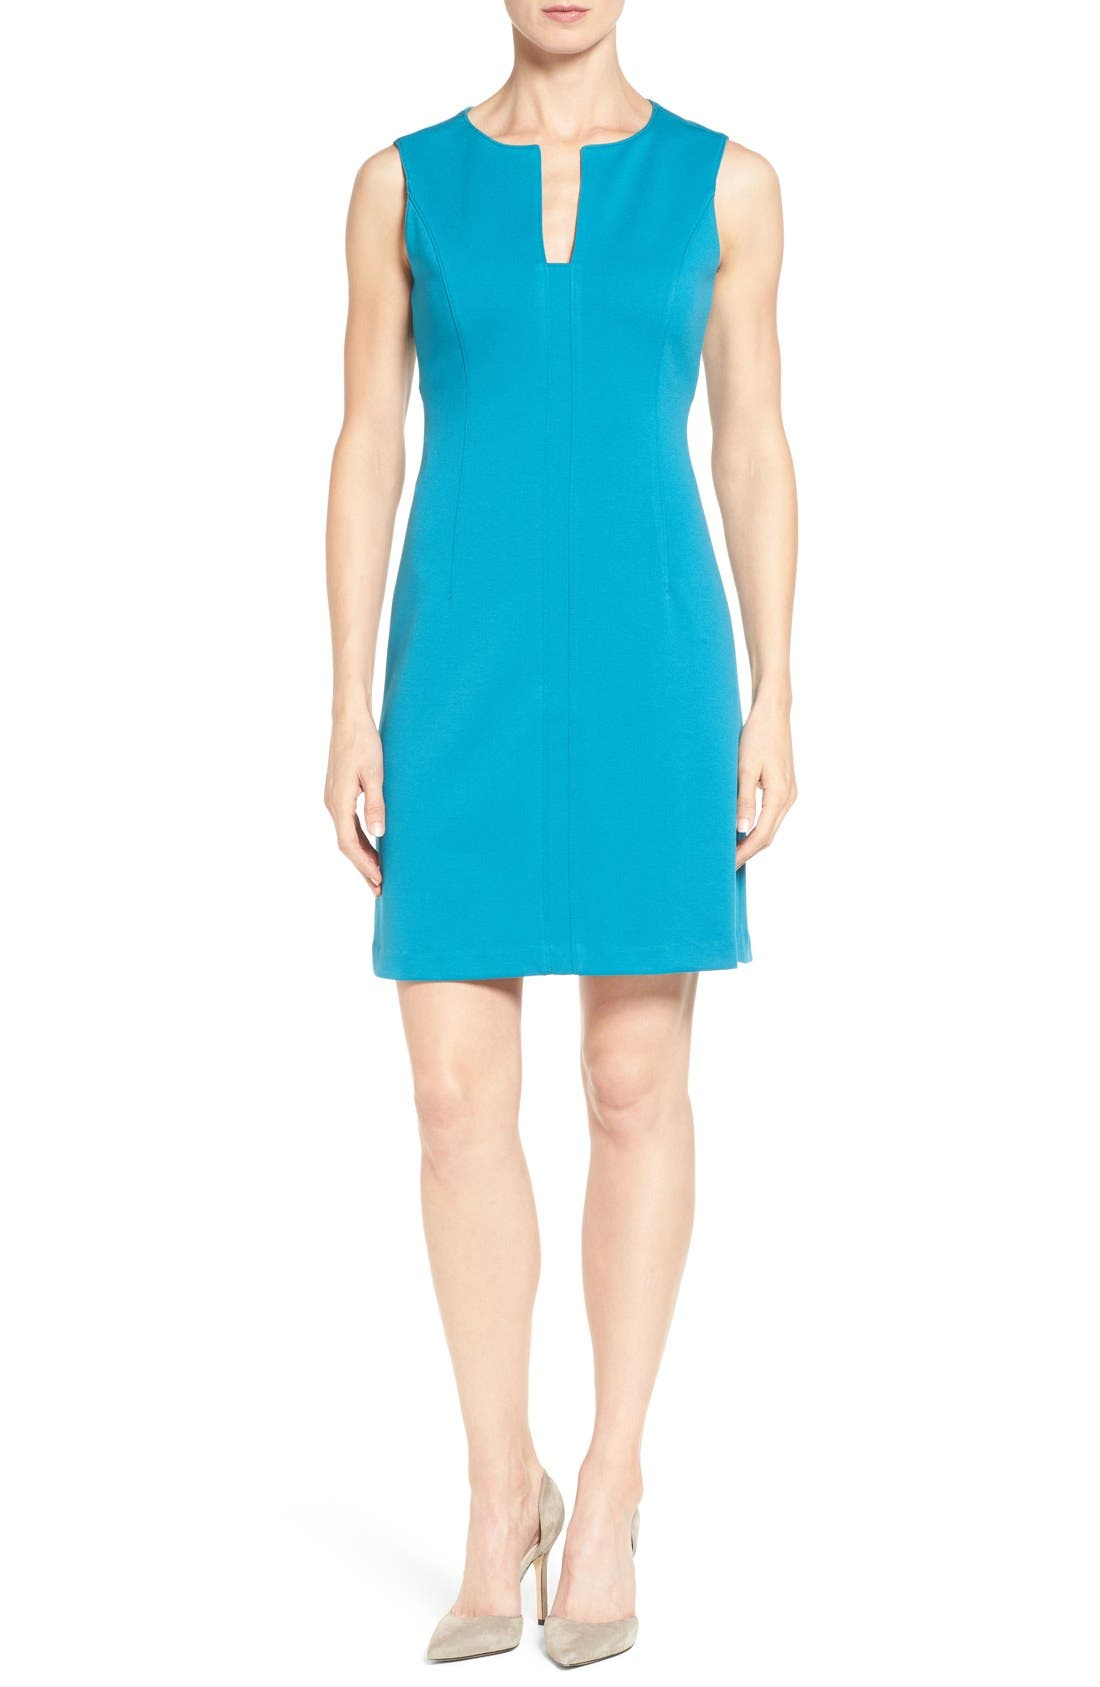 Catherine Catherine Malandrino 'Linden' Split Neck Sheath Dress